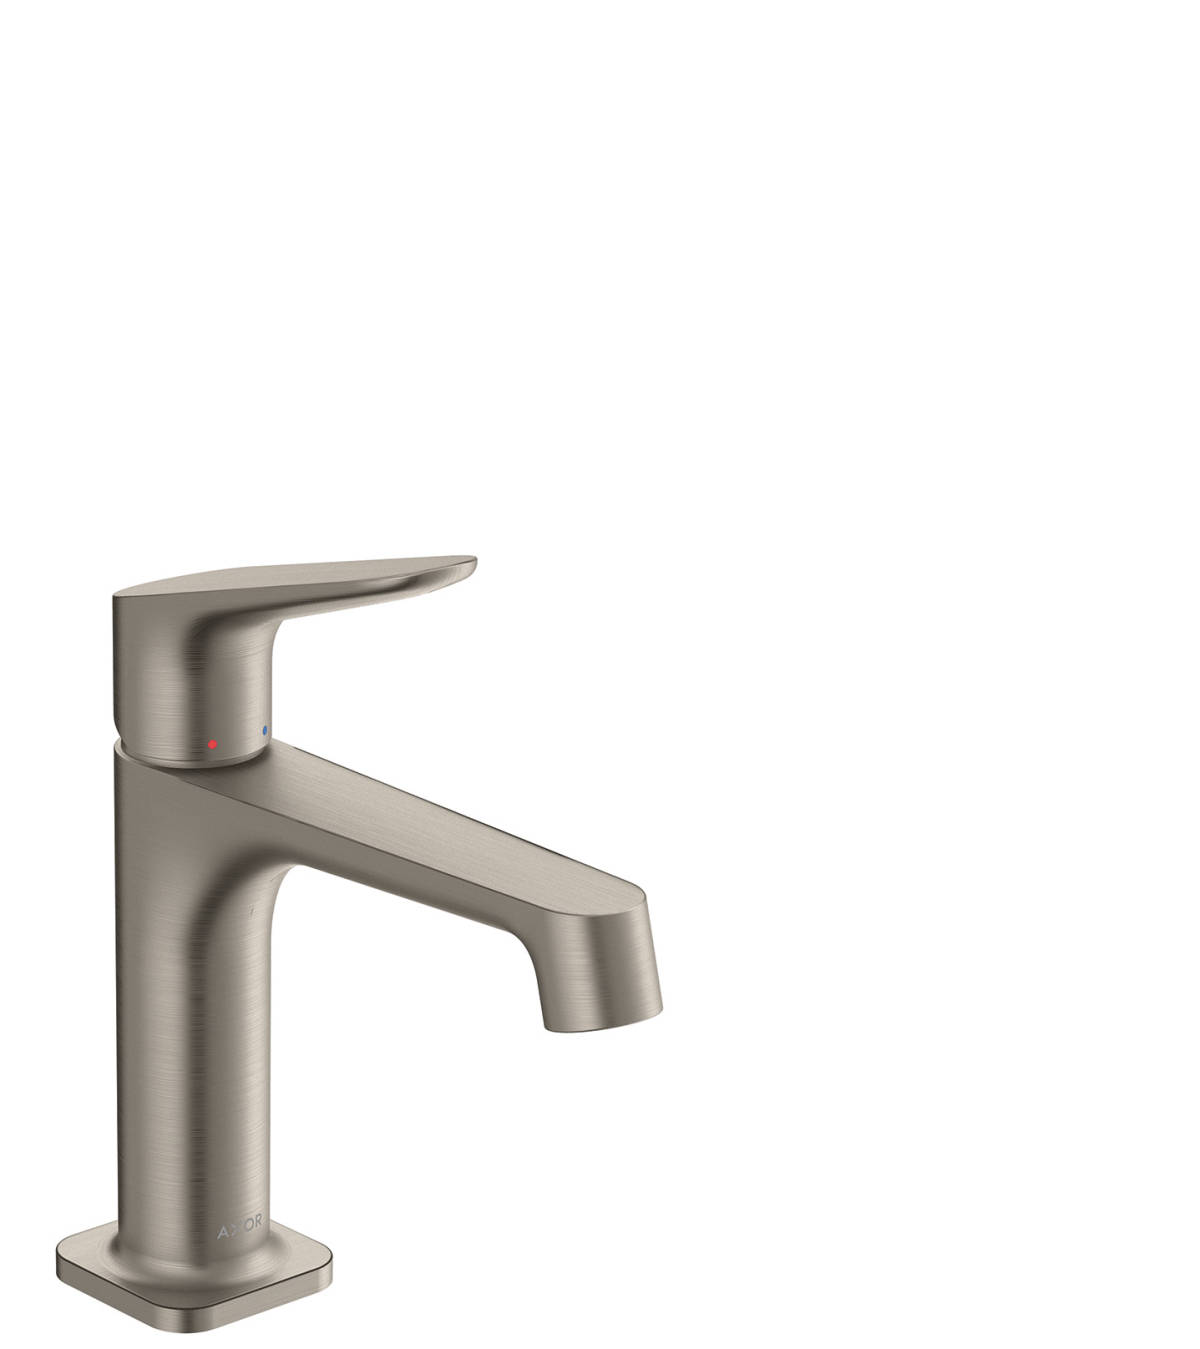 Single lever basin mixer 100 with waste set, Stainless Steel Optic, 34017800